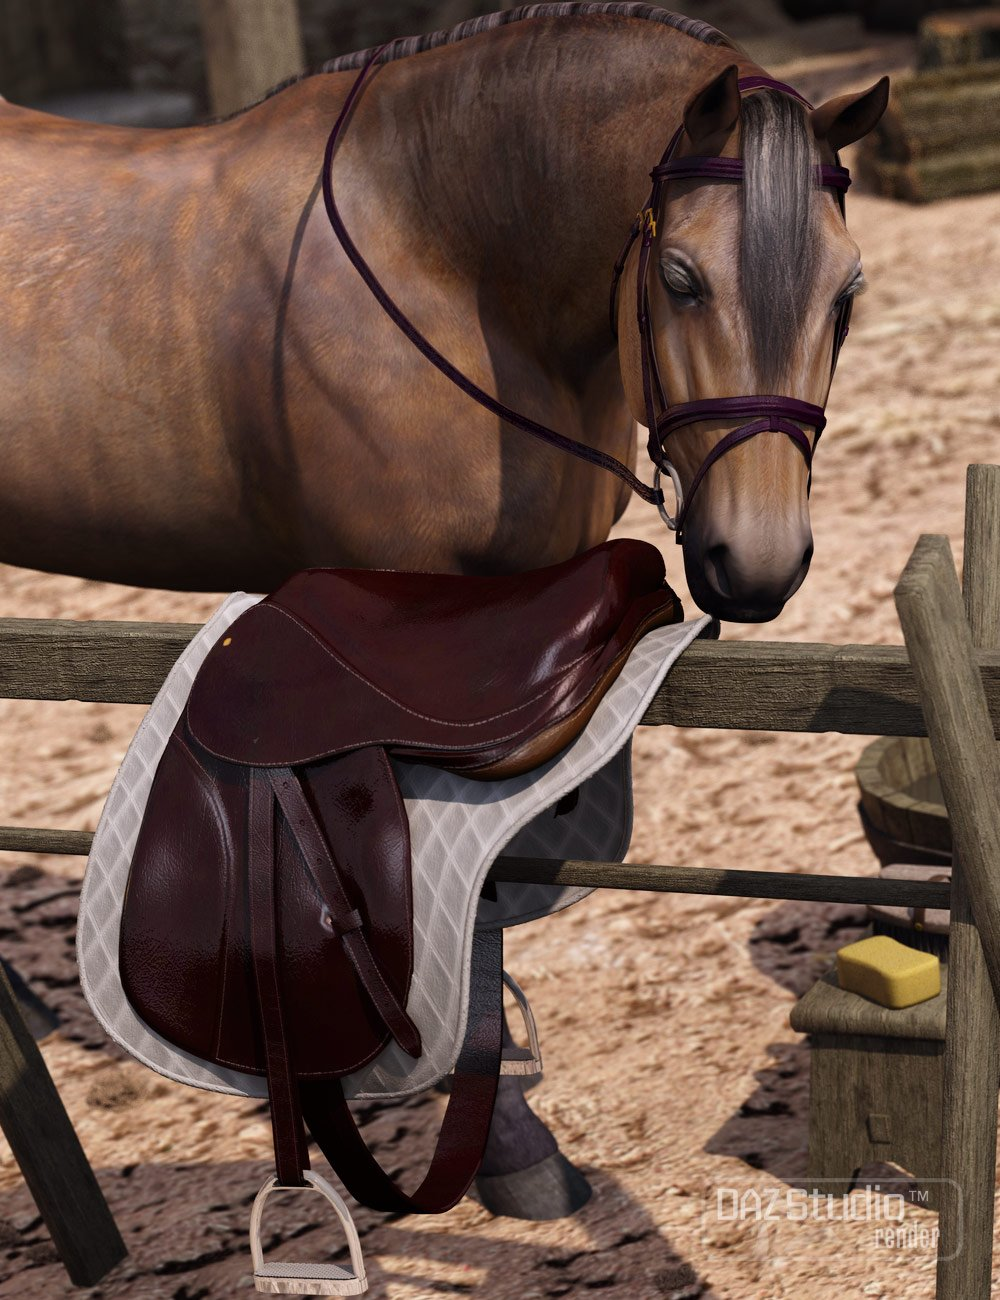 English Saddle for DAZ Horse 2 by: WillDupre, 3D Models by Daz 3D